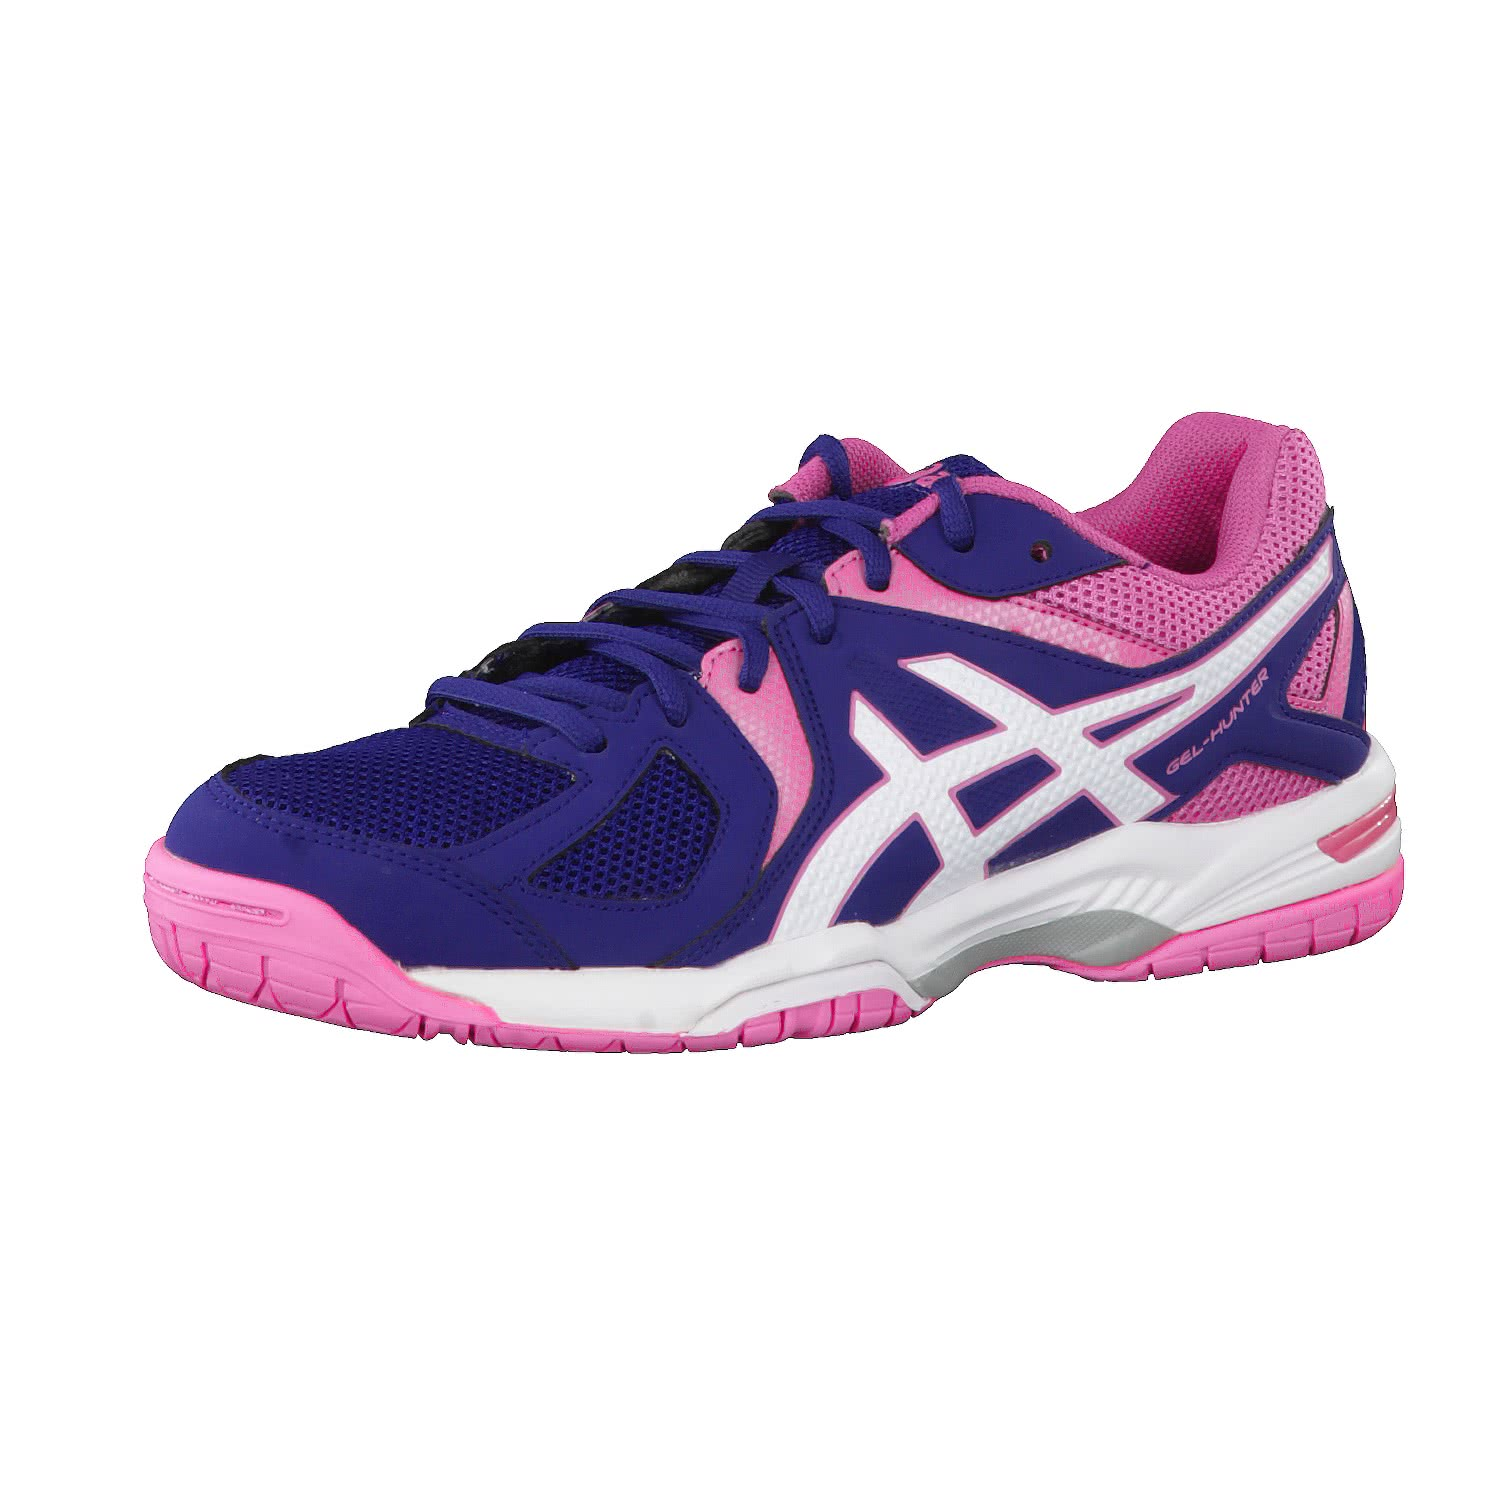 Asics Damen Hallenschuhe Gel-Hunter 3 R557Y | cortexpower.de